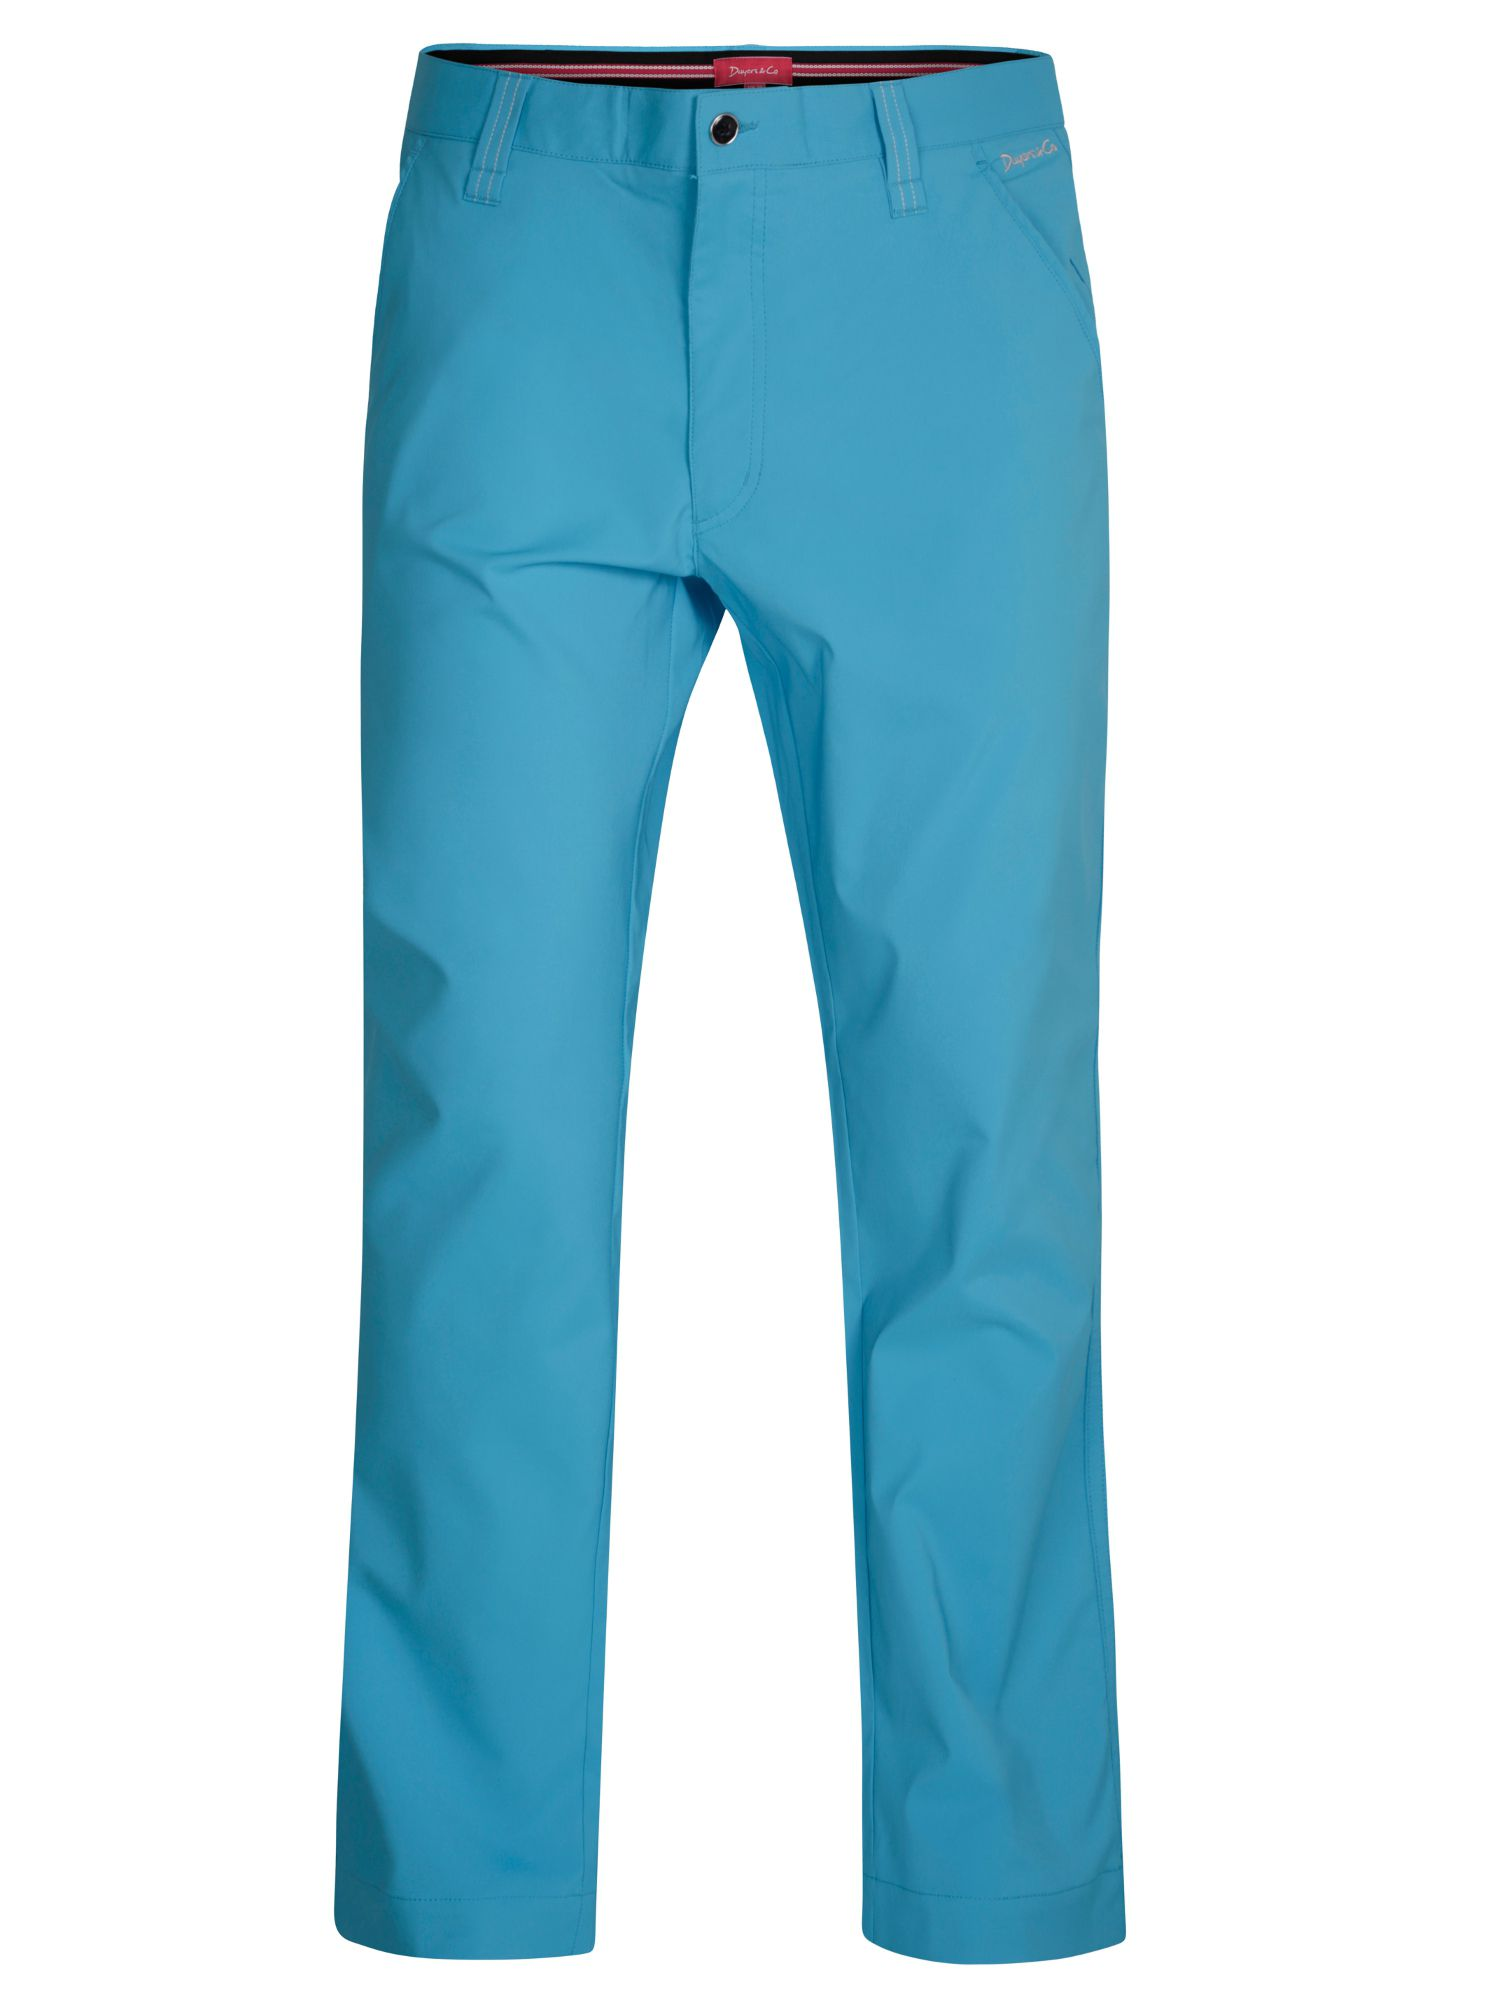 Dwyers and Co Men's Dwyers and Co Micro tech 2.0 trouser, Aqua